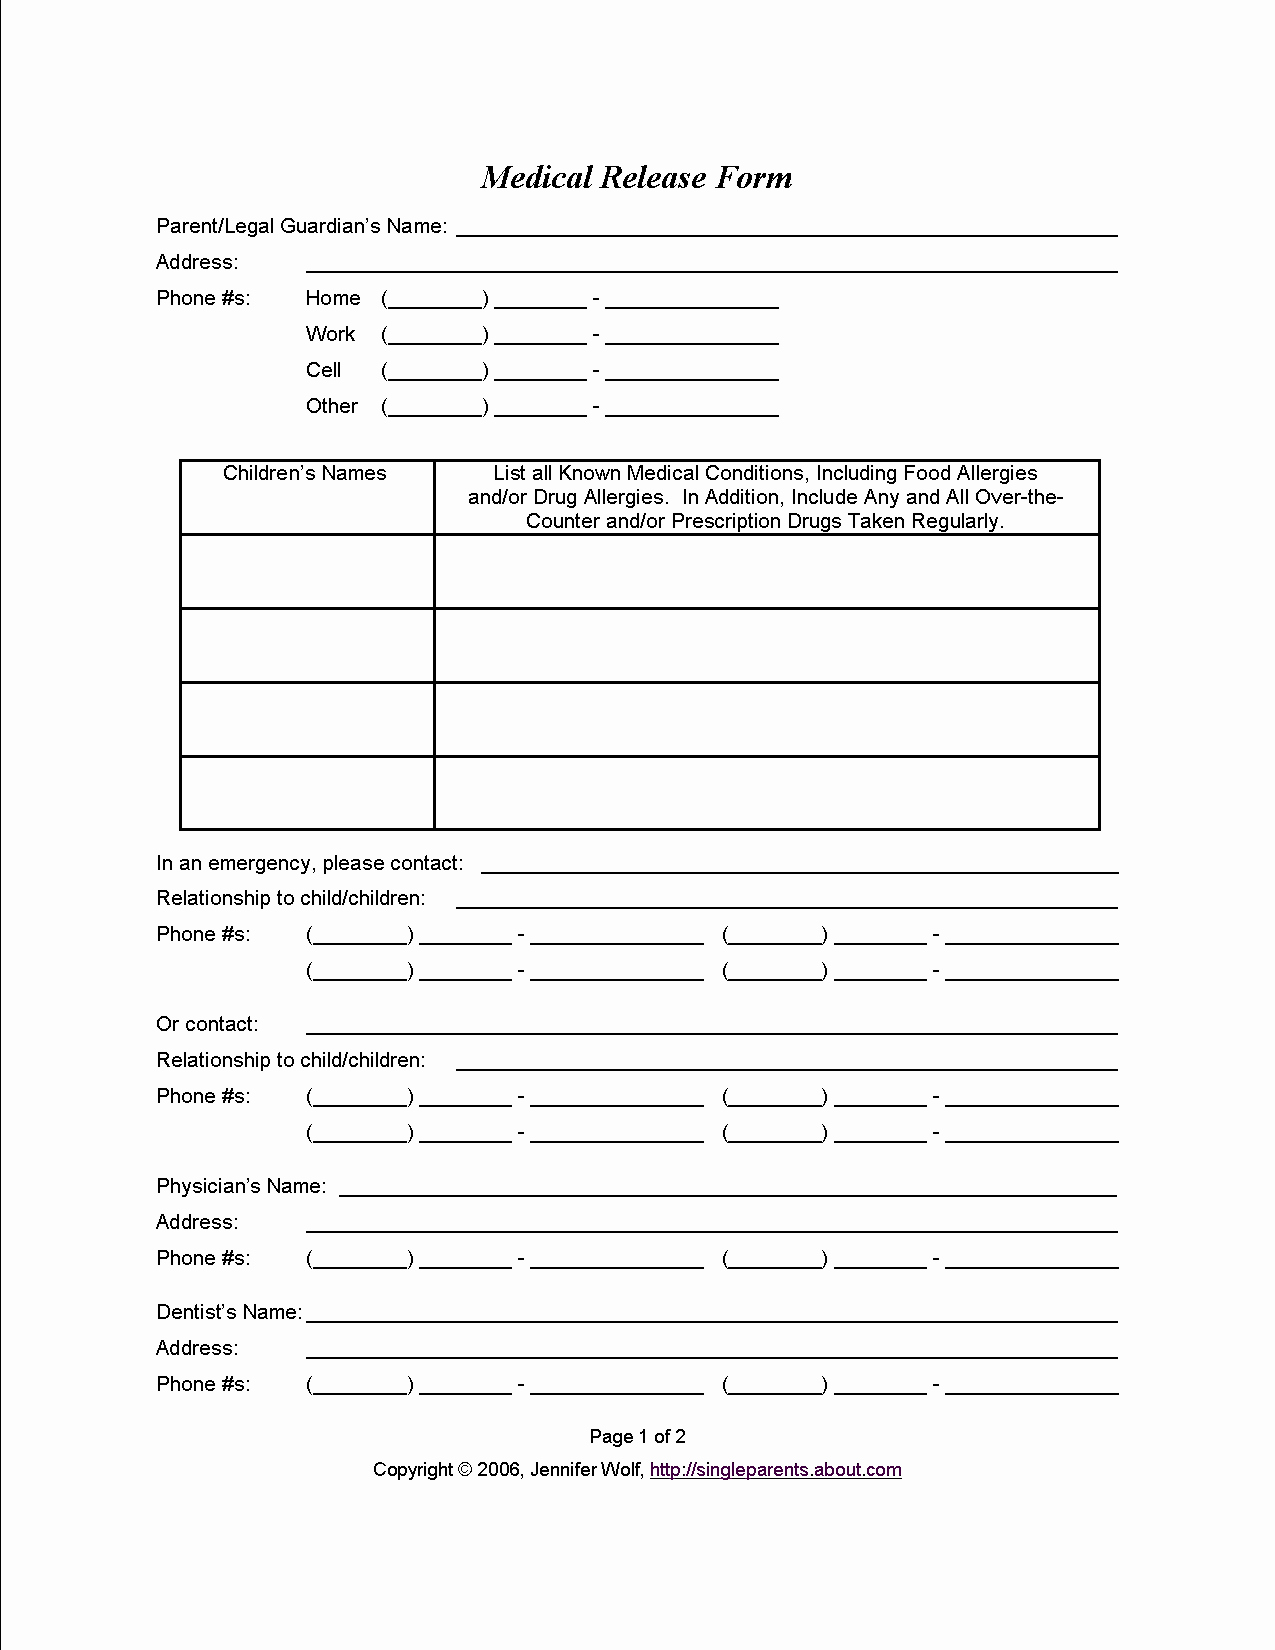 Medical Consent form Template Inspirational Medical Consent form when You Might Need E